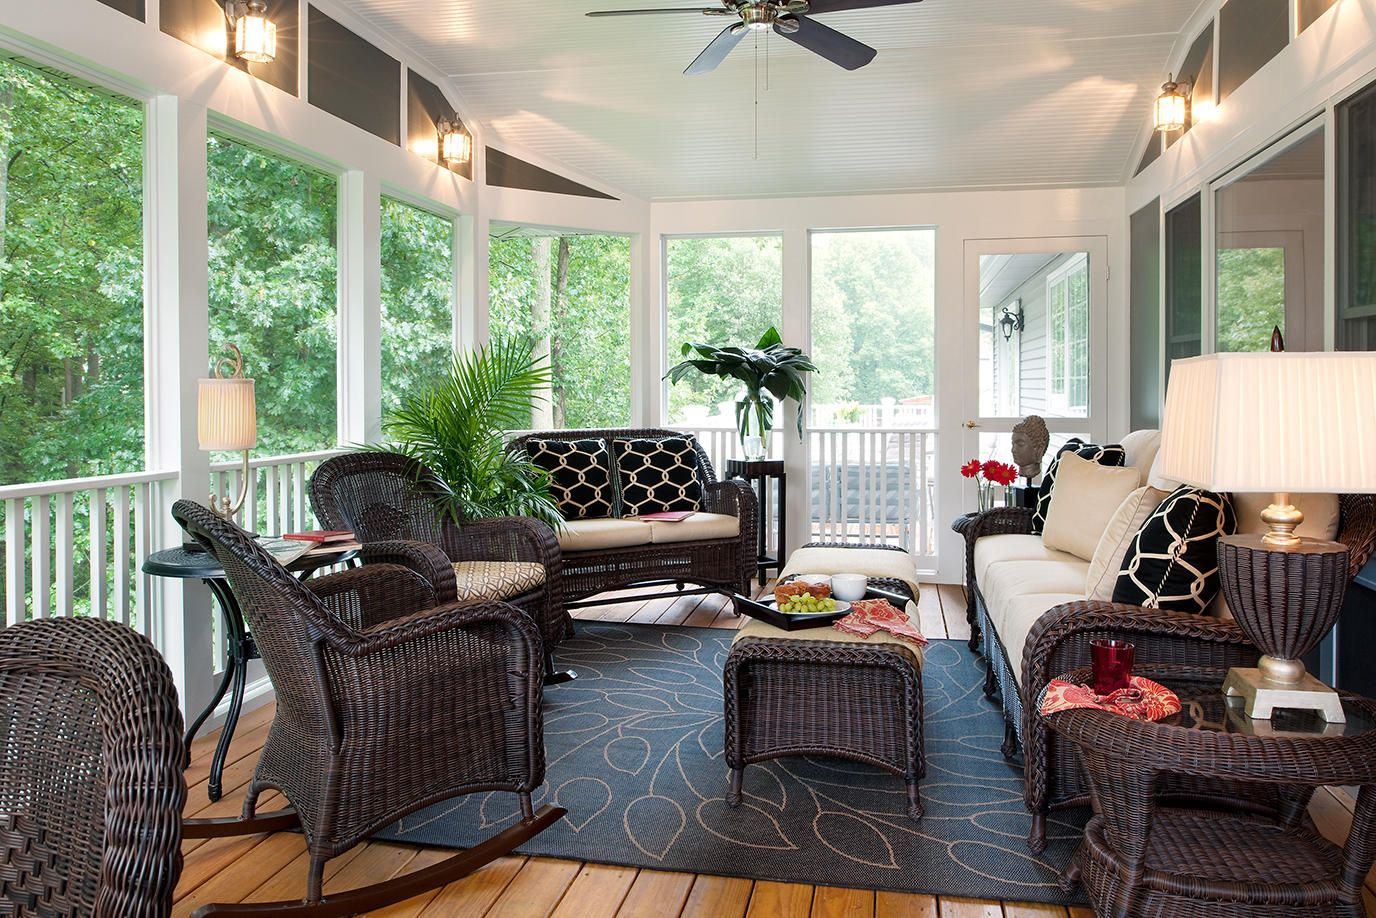 Outdoor Porch Design Ideas - Interior Design